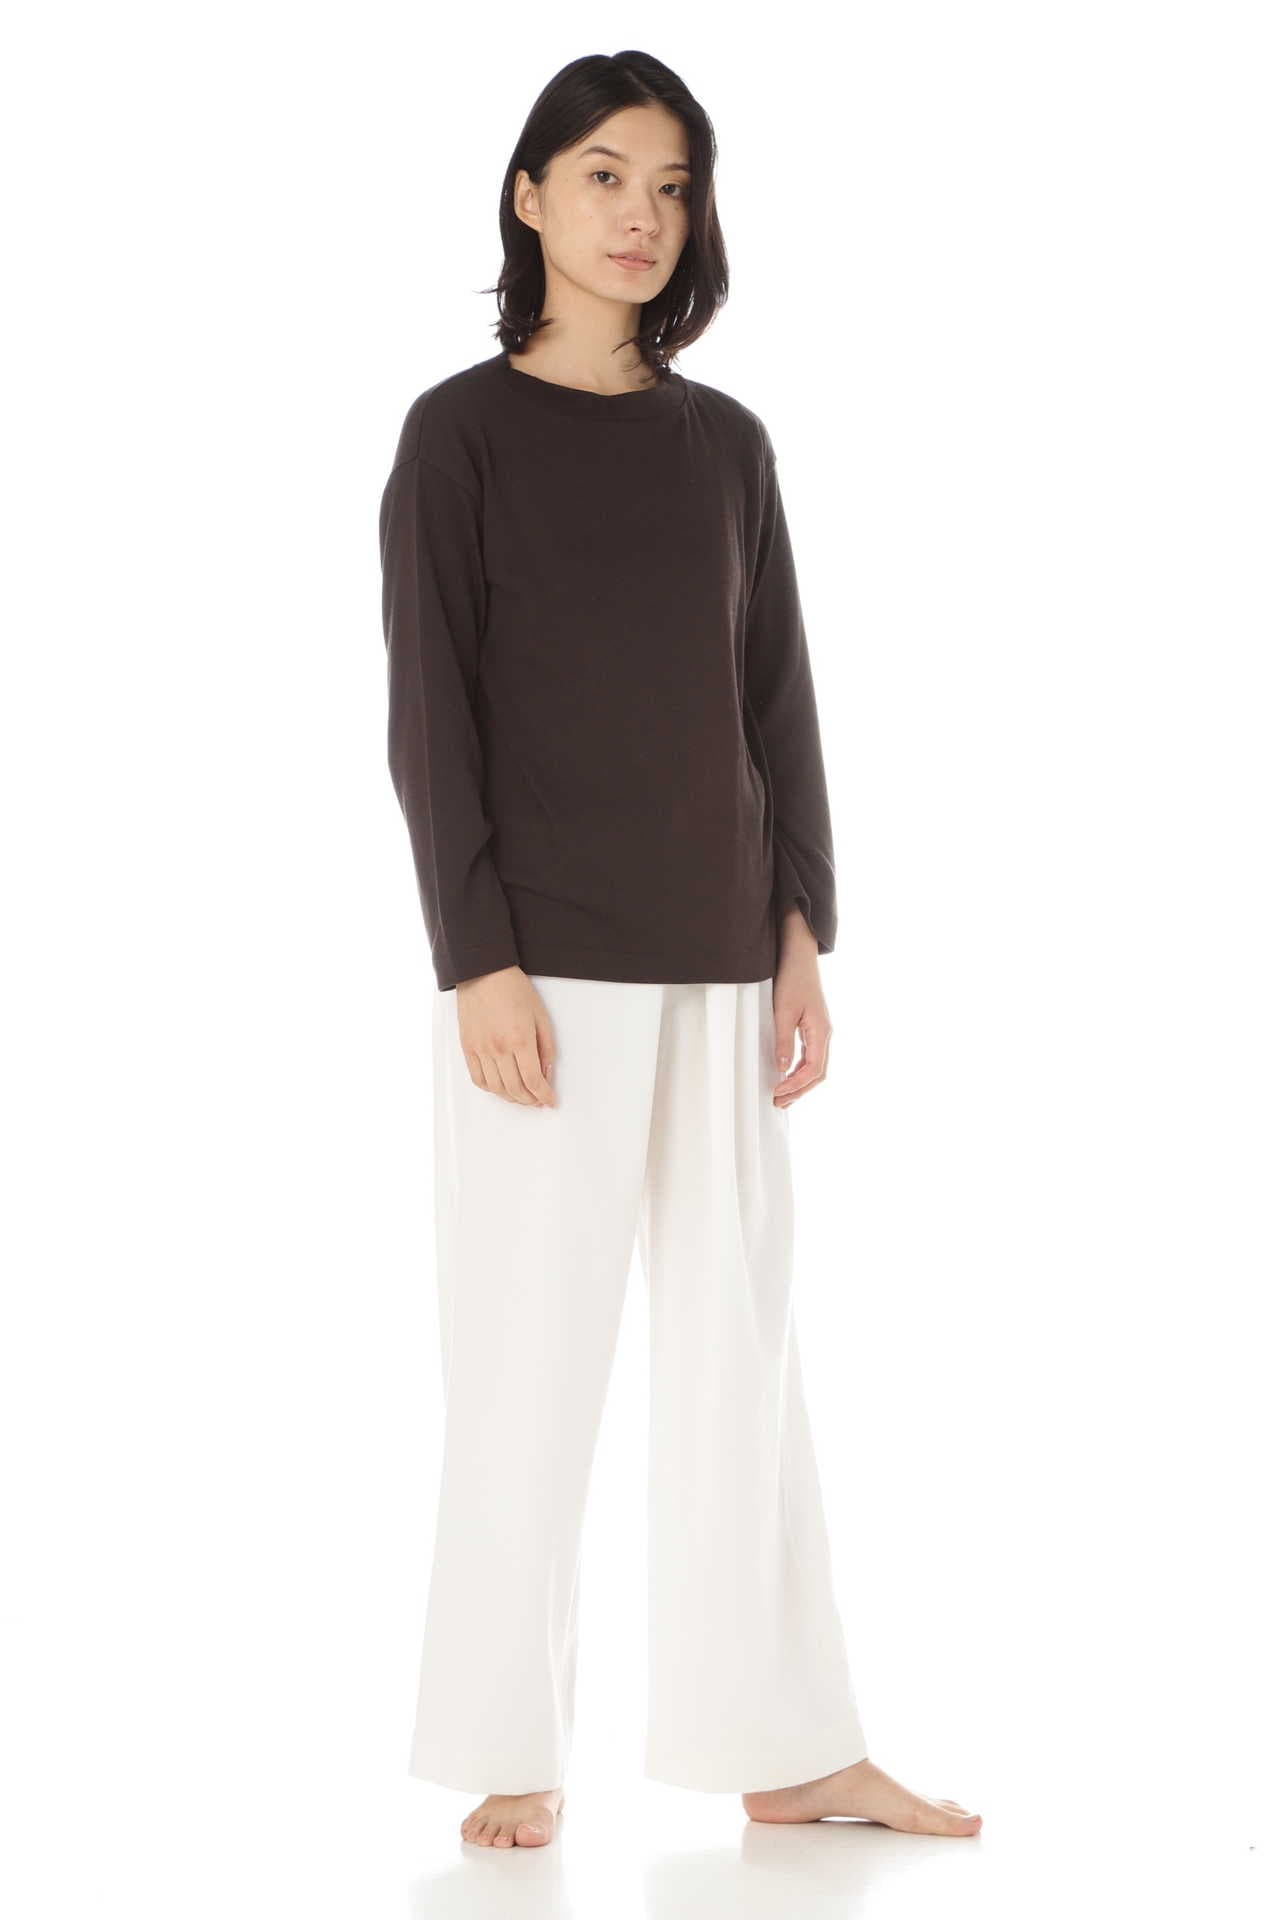 WARM COTTON CASHMERE JERSEY9